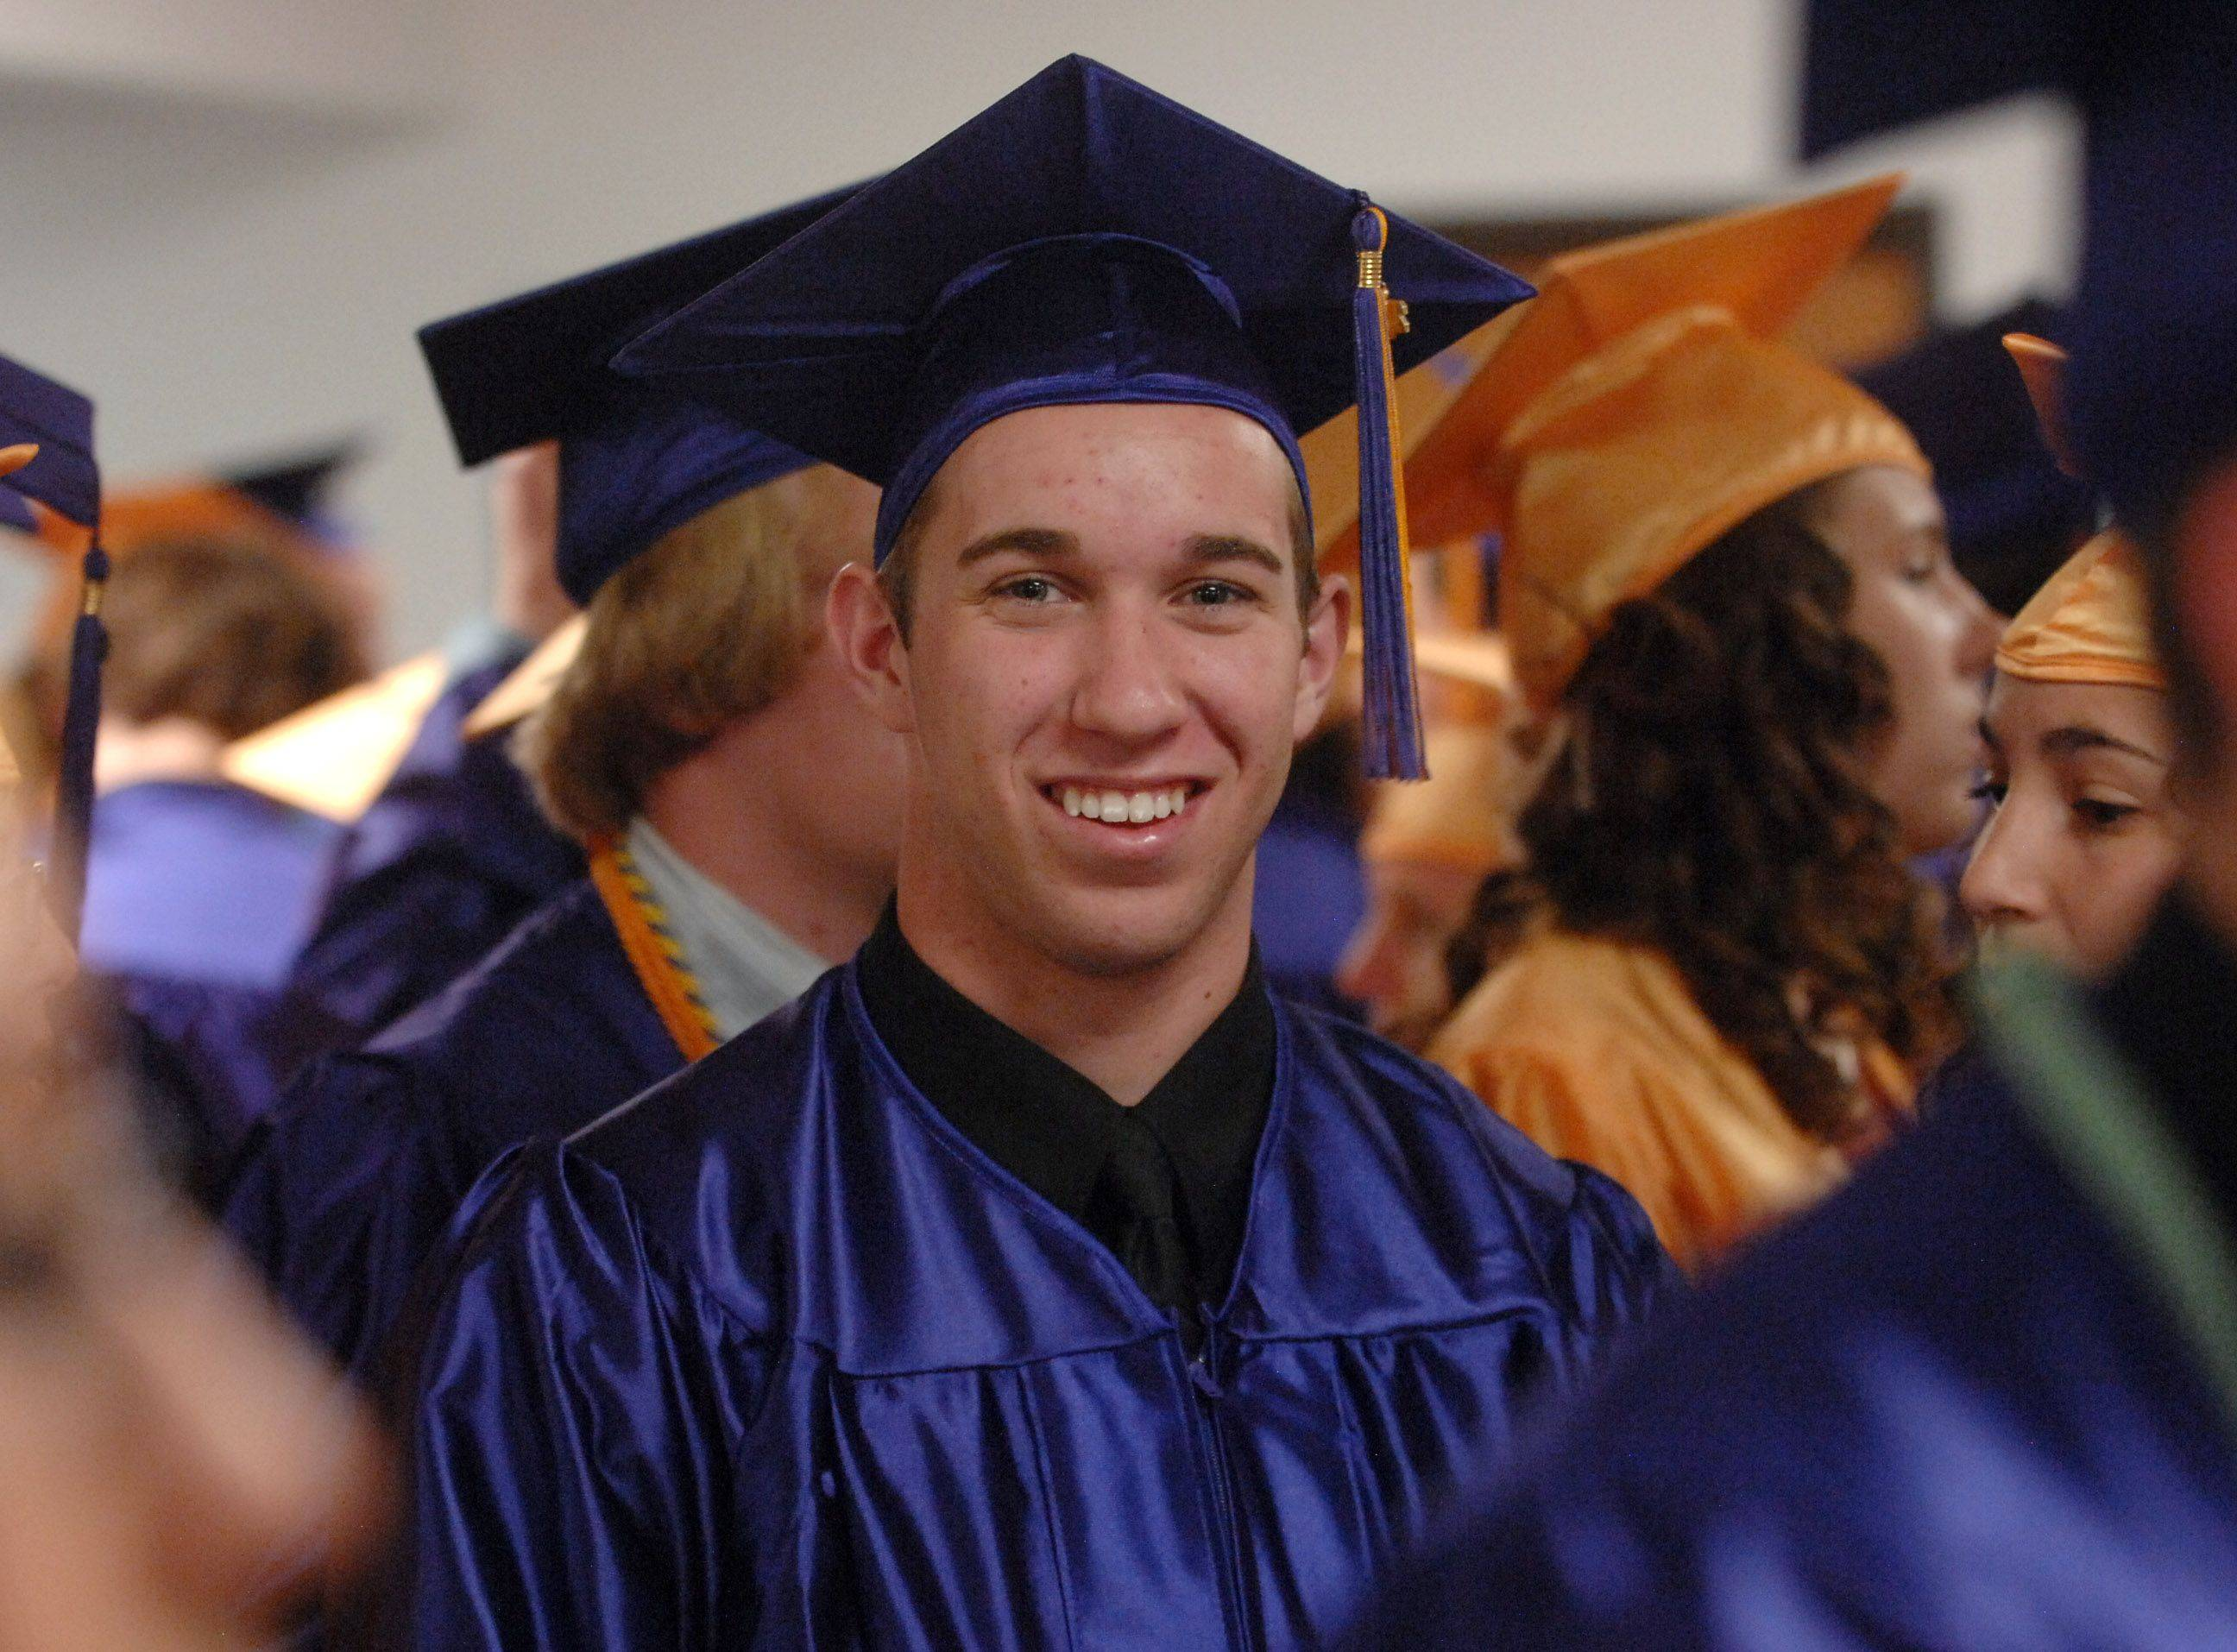 Images from the Wauconda High School graduation Sunday, May 22 at the Quentin Road Bible Baptist Church in Lake Zurich.